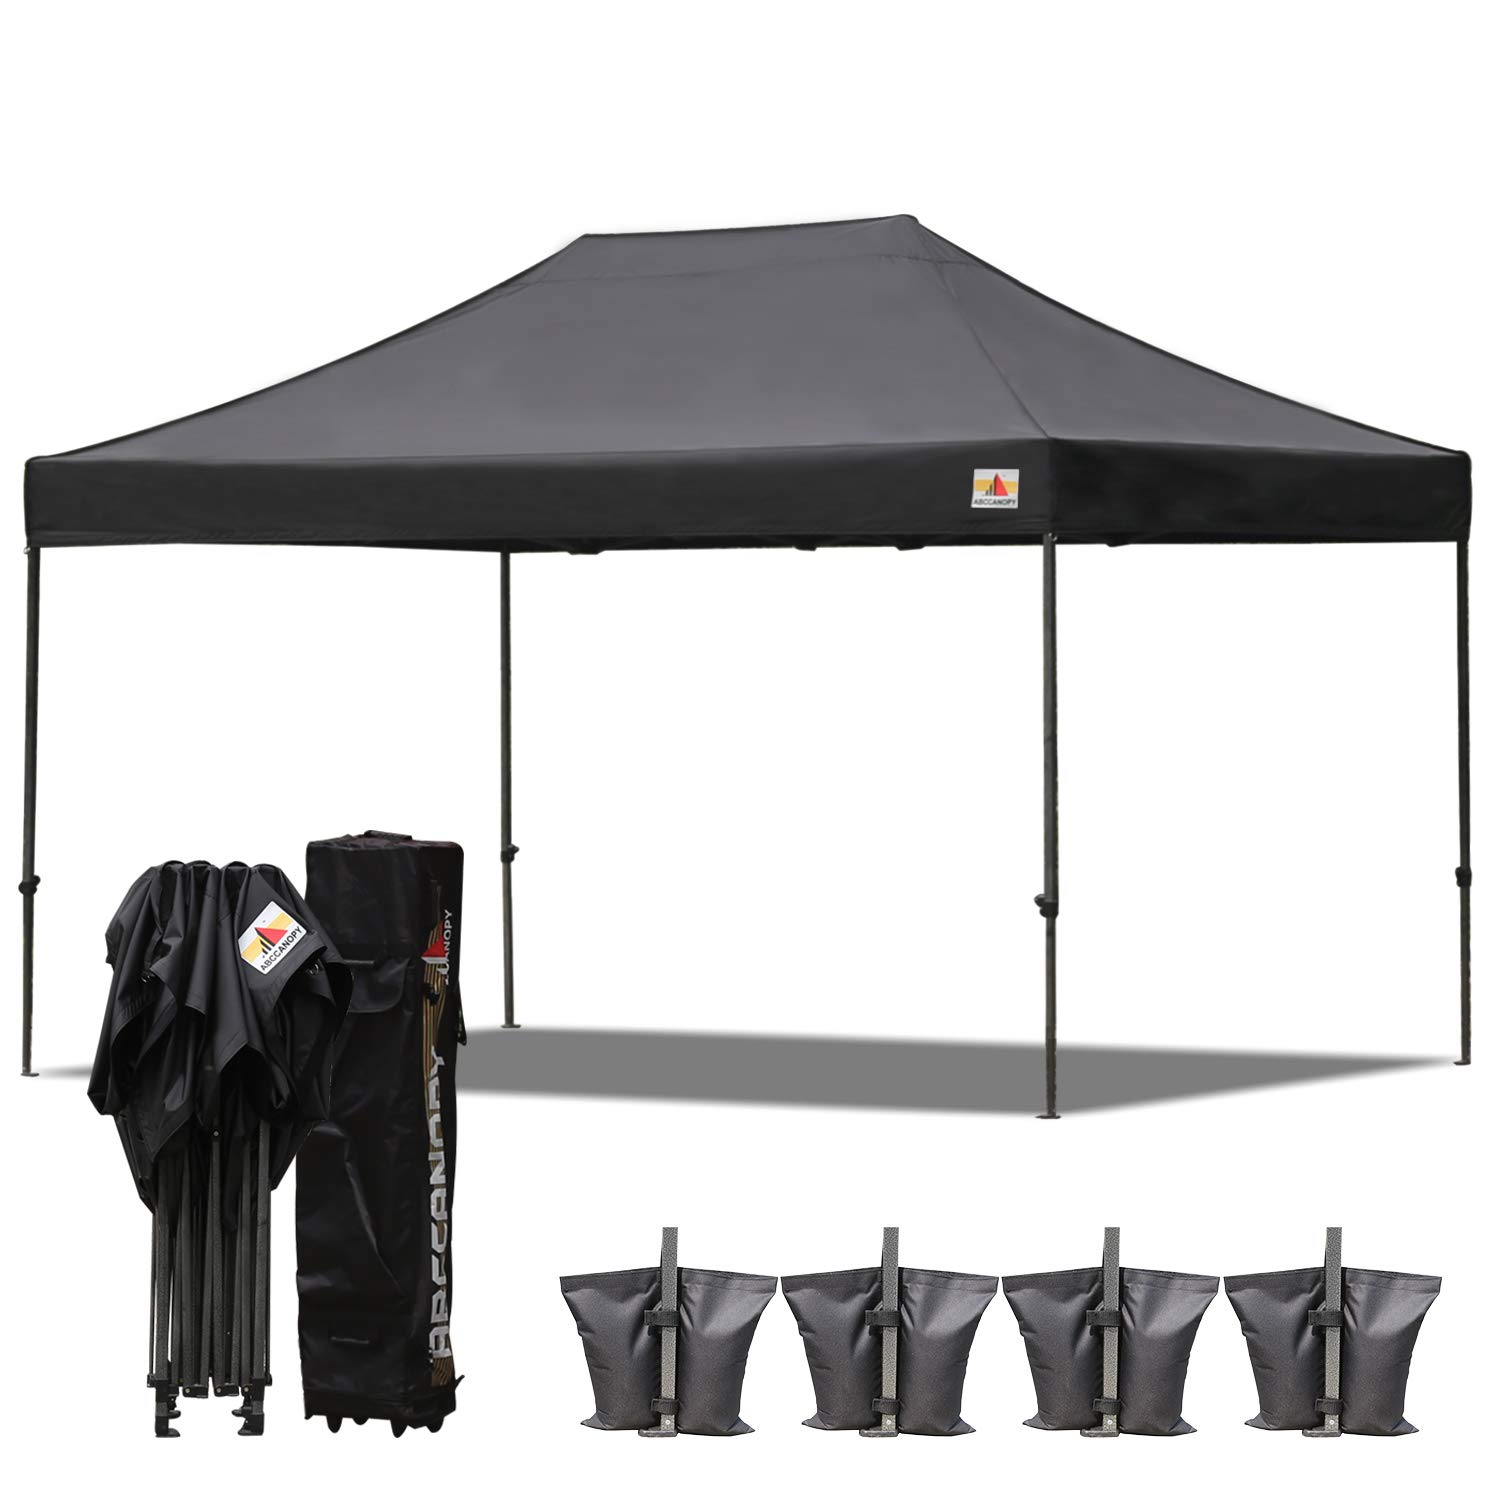 ABCCANOPY 23 Colors 10×15 Pop up Tent Instant Canopy Commercial Outdoor Canopy with Wheeled Carry Bag Bonus 4 Weight Bags Black